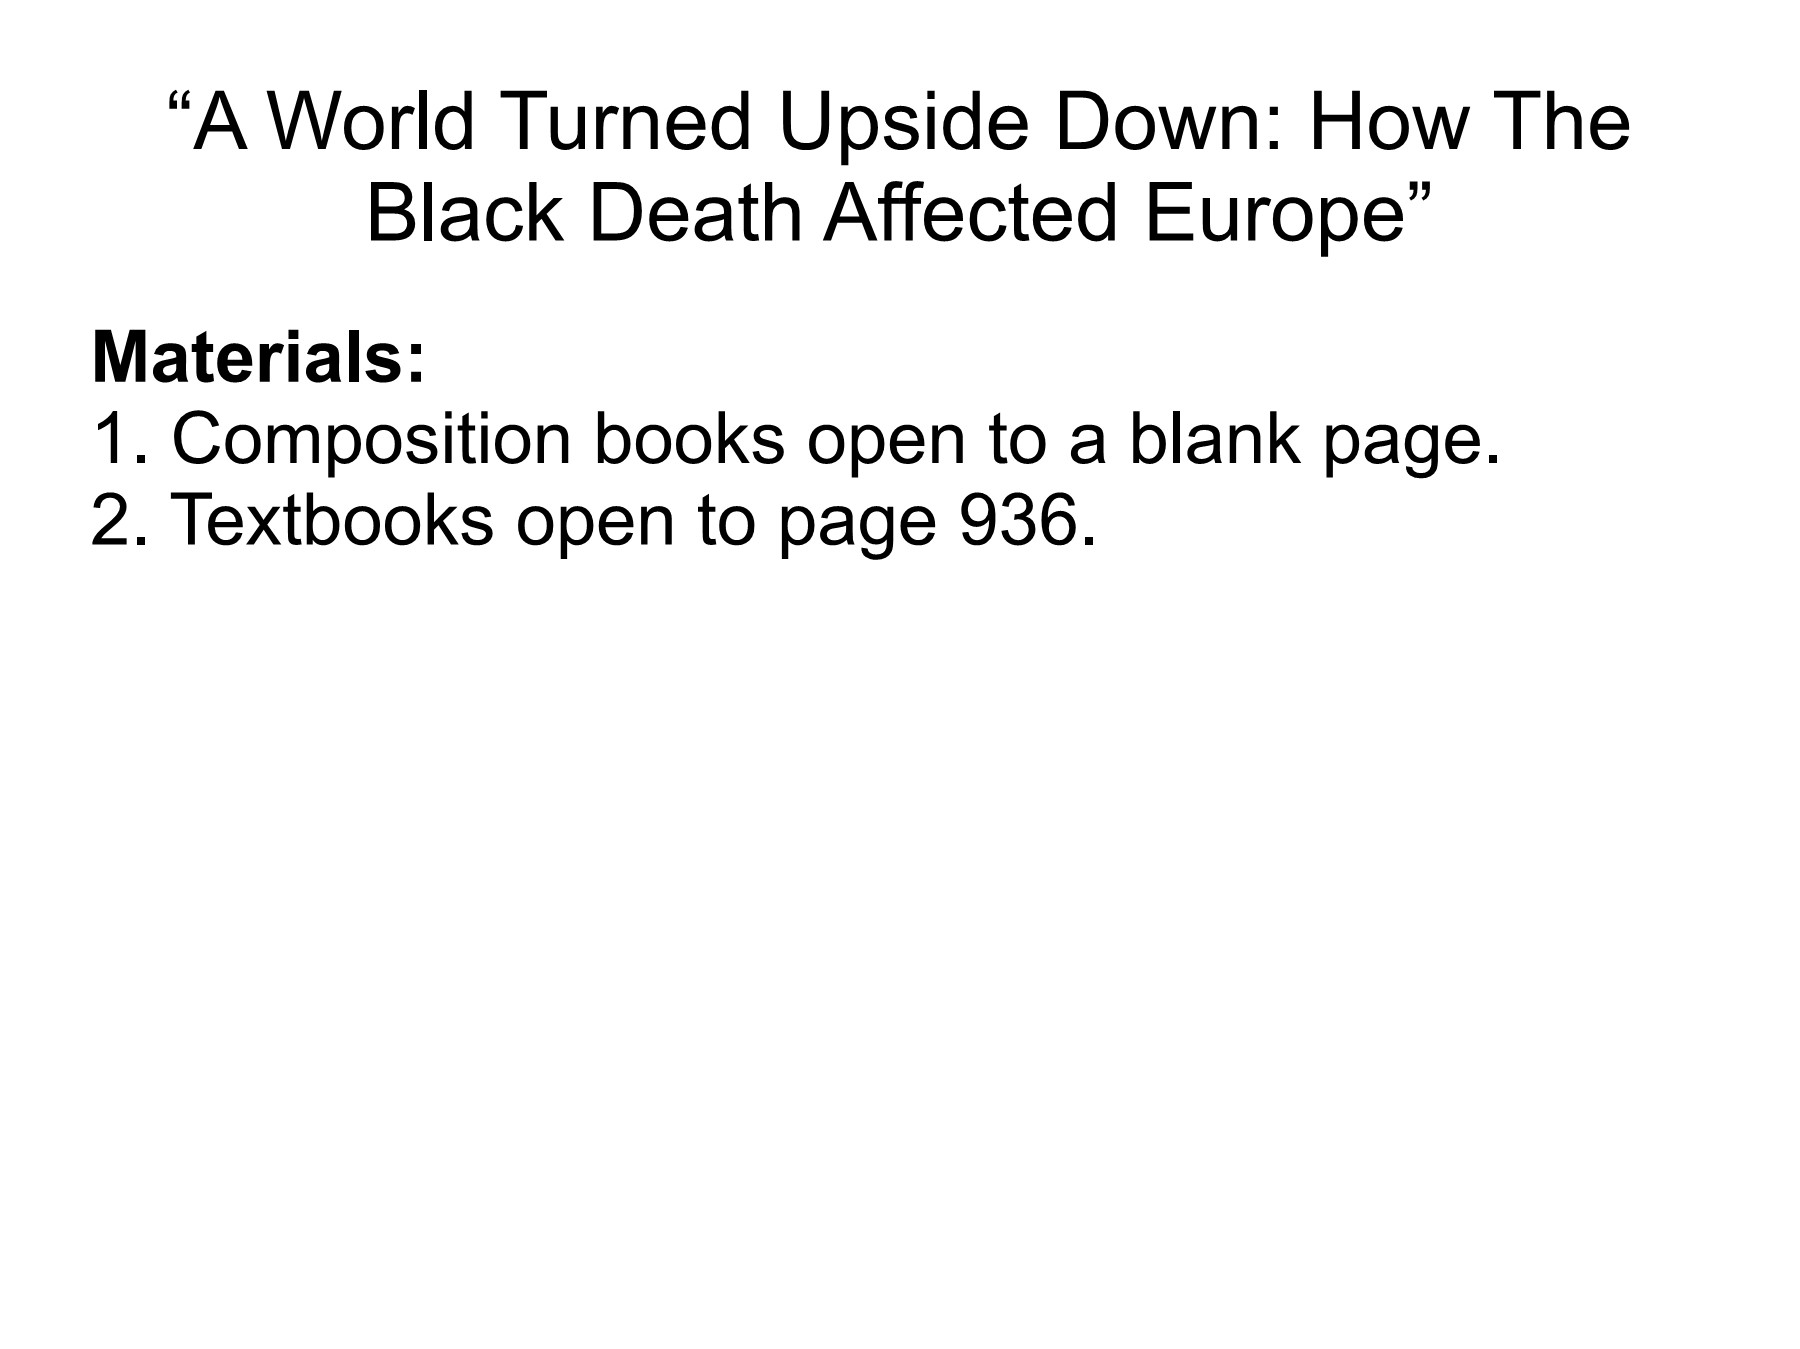 A World Turned Upside Down: How The Black Death Affected